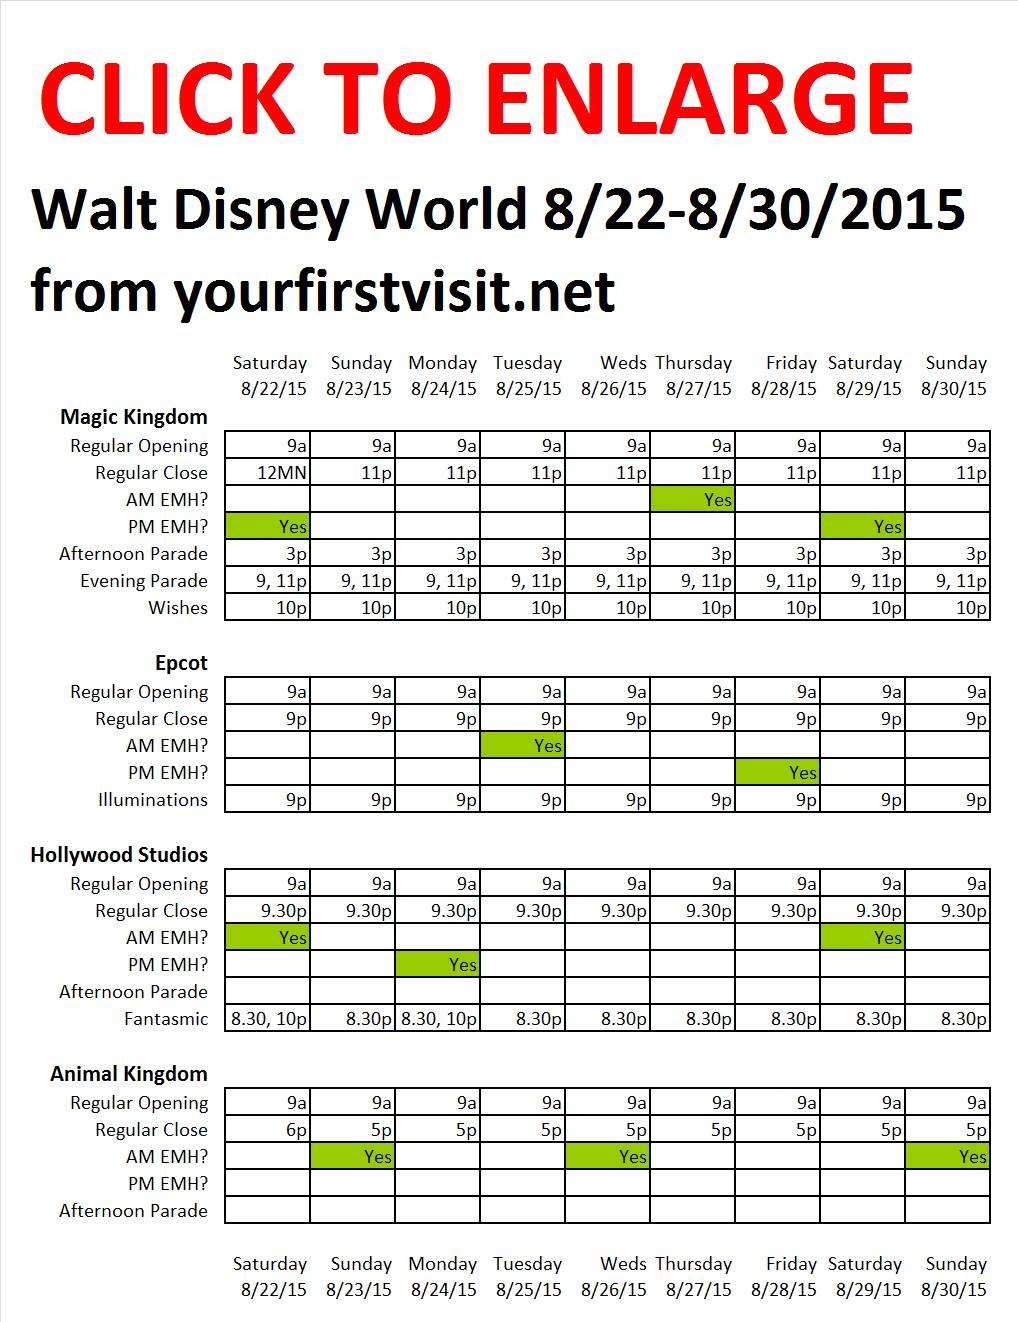 Disney World 8-22 to 8-30-2015 from yourfirstvisit.net